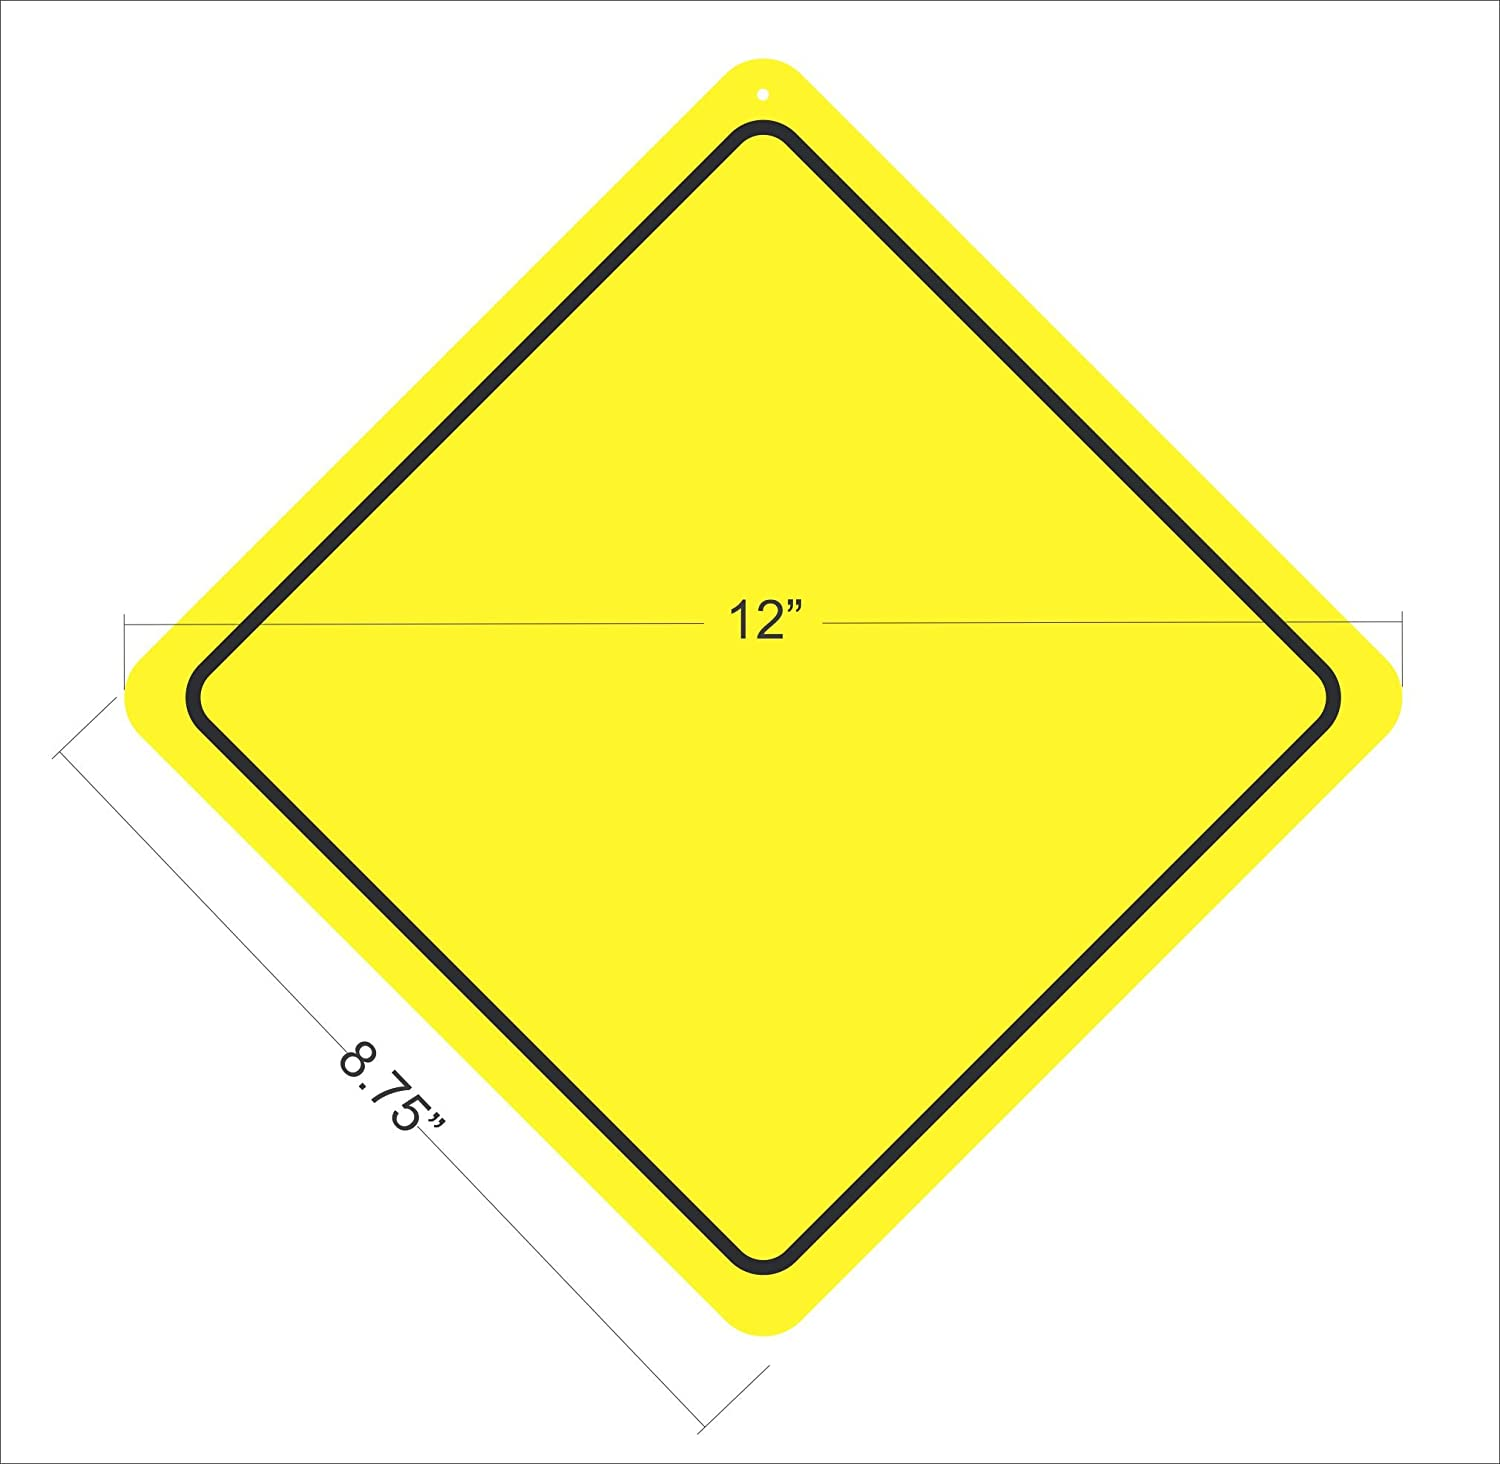 PALEONTOLOGIST ZONE Funny Novelty Crossing Sign cheapyardsigns